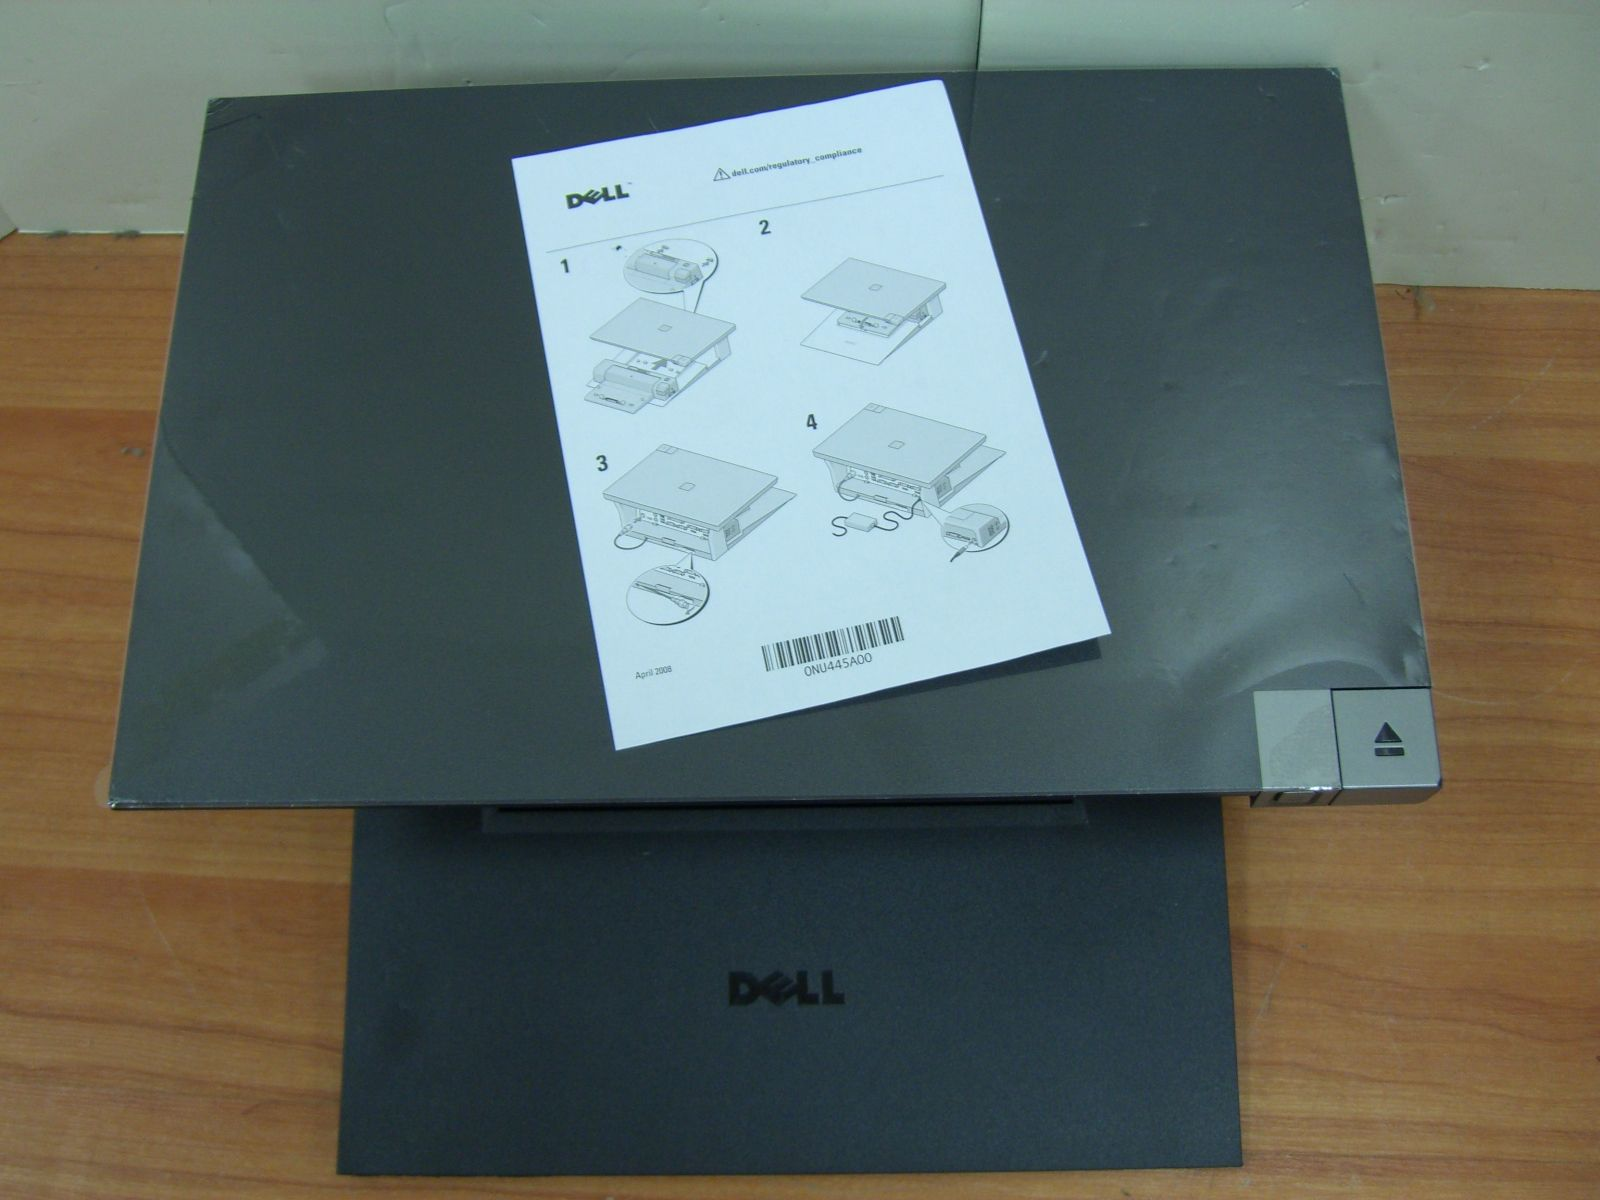 Dell E Series Laptop Notebook Monitor Stand and Docking Station PW380